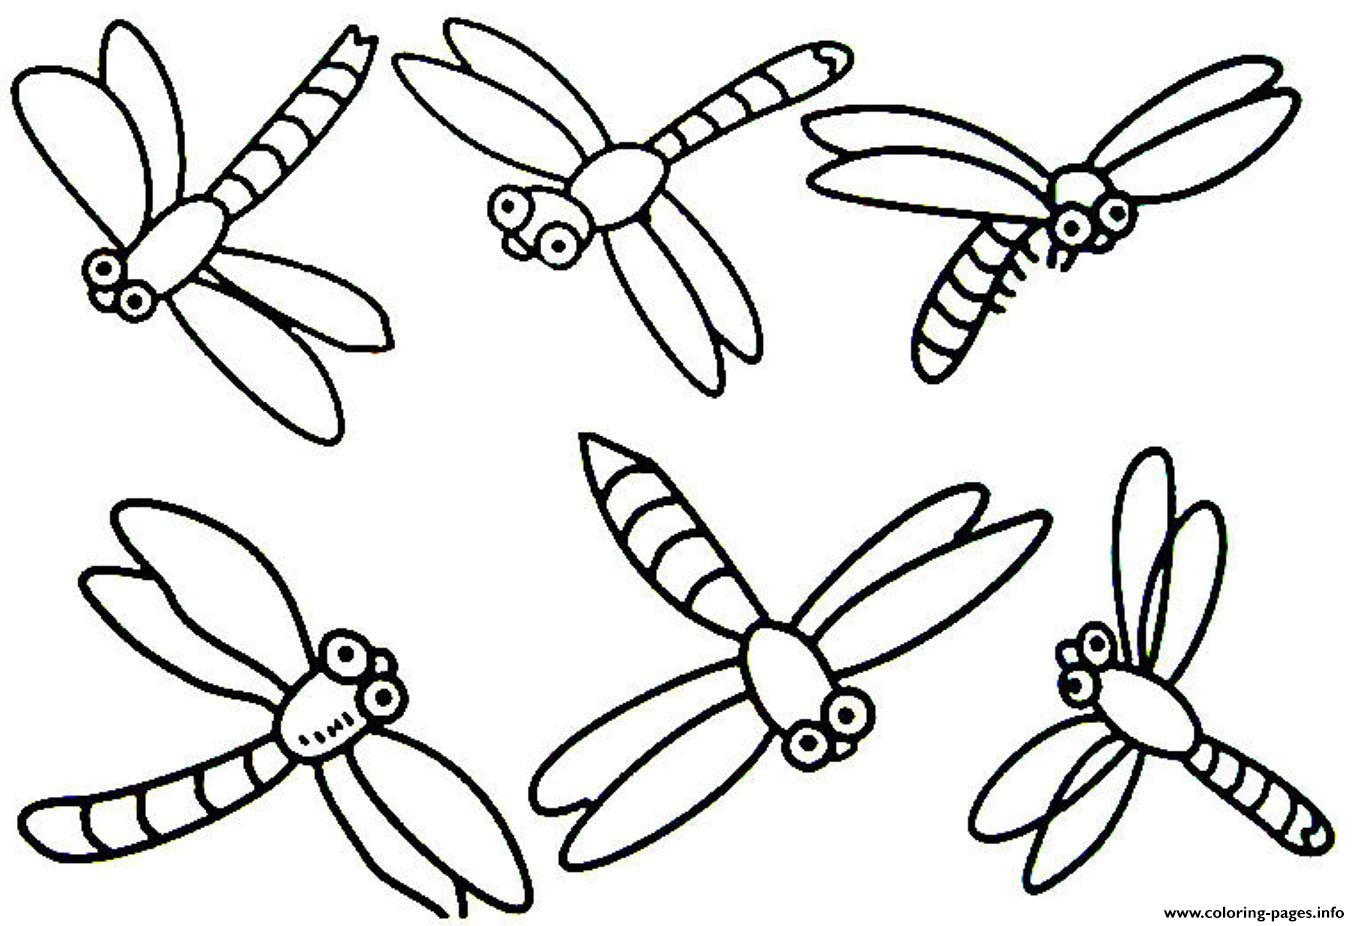 Dragonfly Coloring Pages to Print - Get Coloring Pages | 926x1360